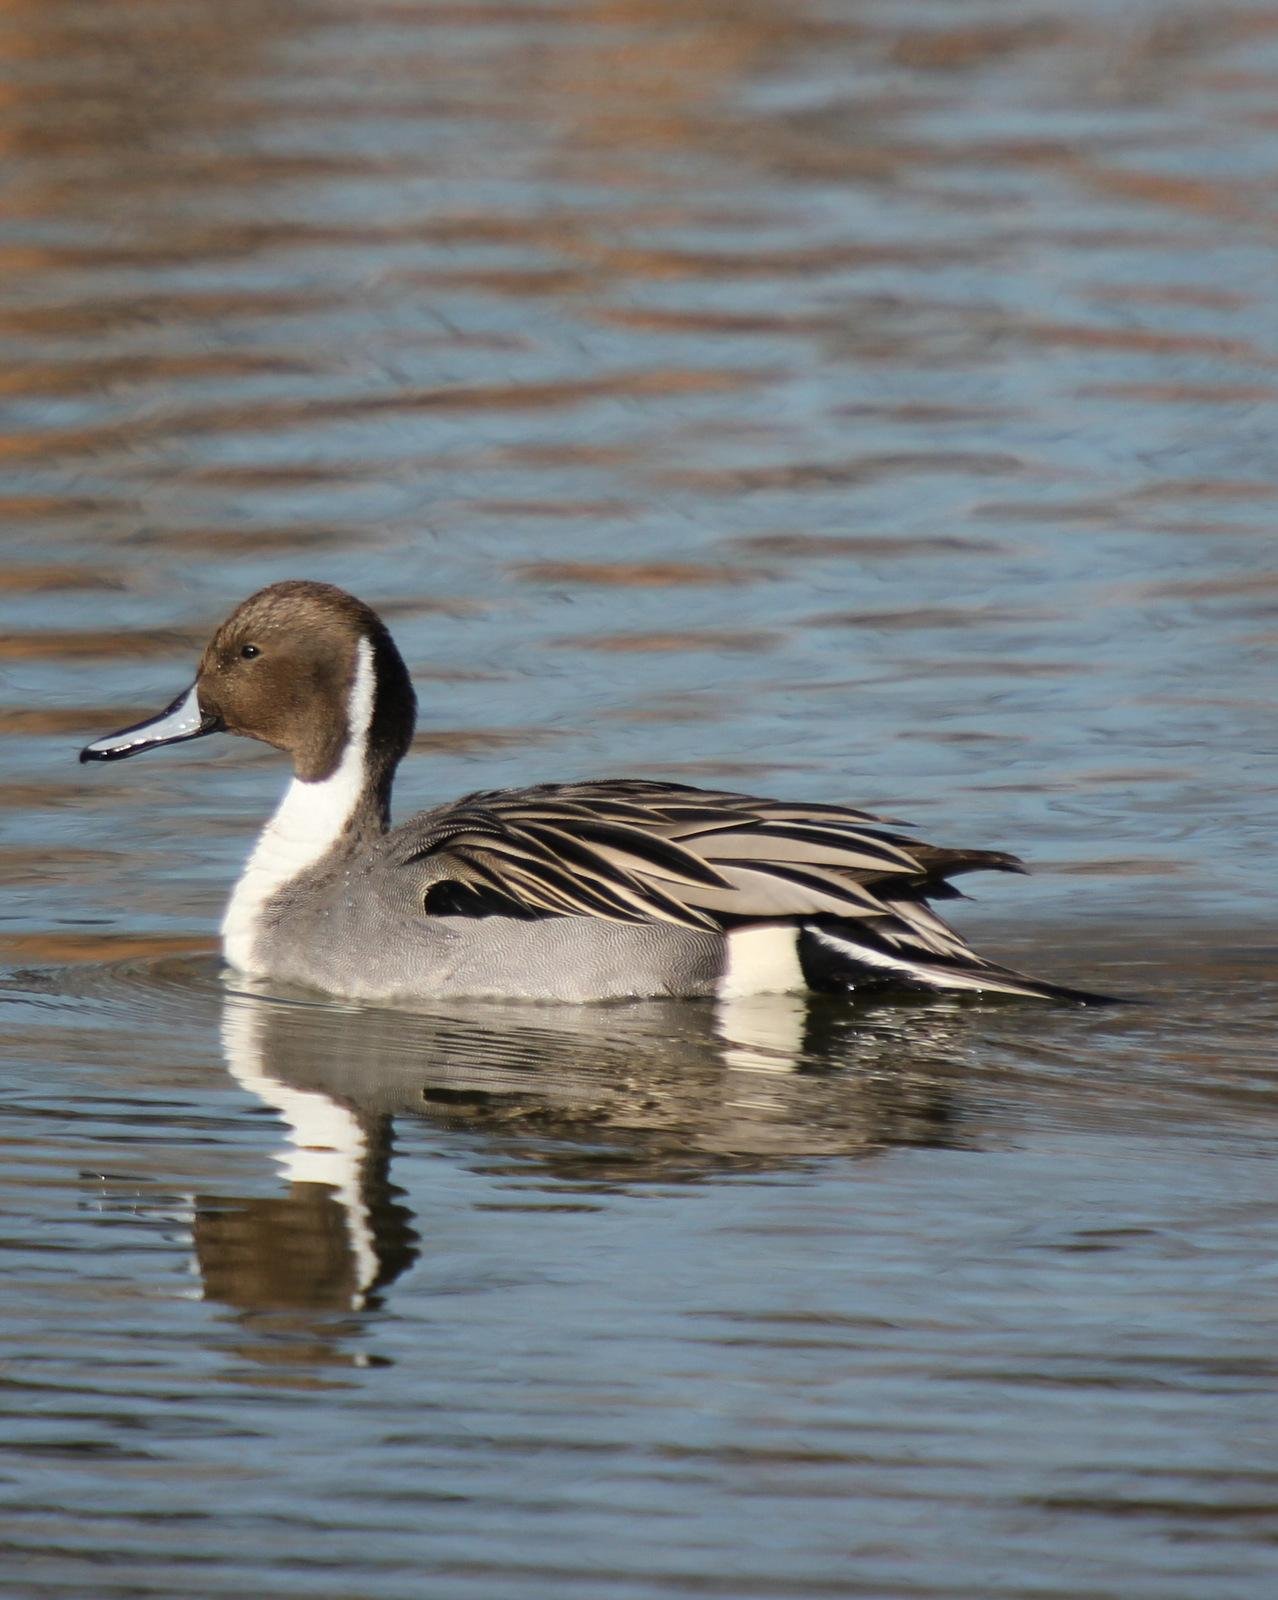 Northern Pintail Photo by Steve Valasek